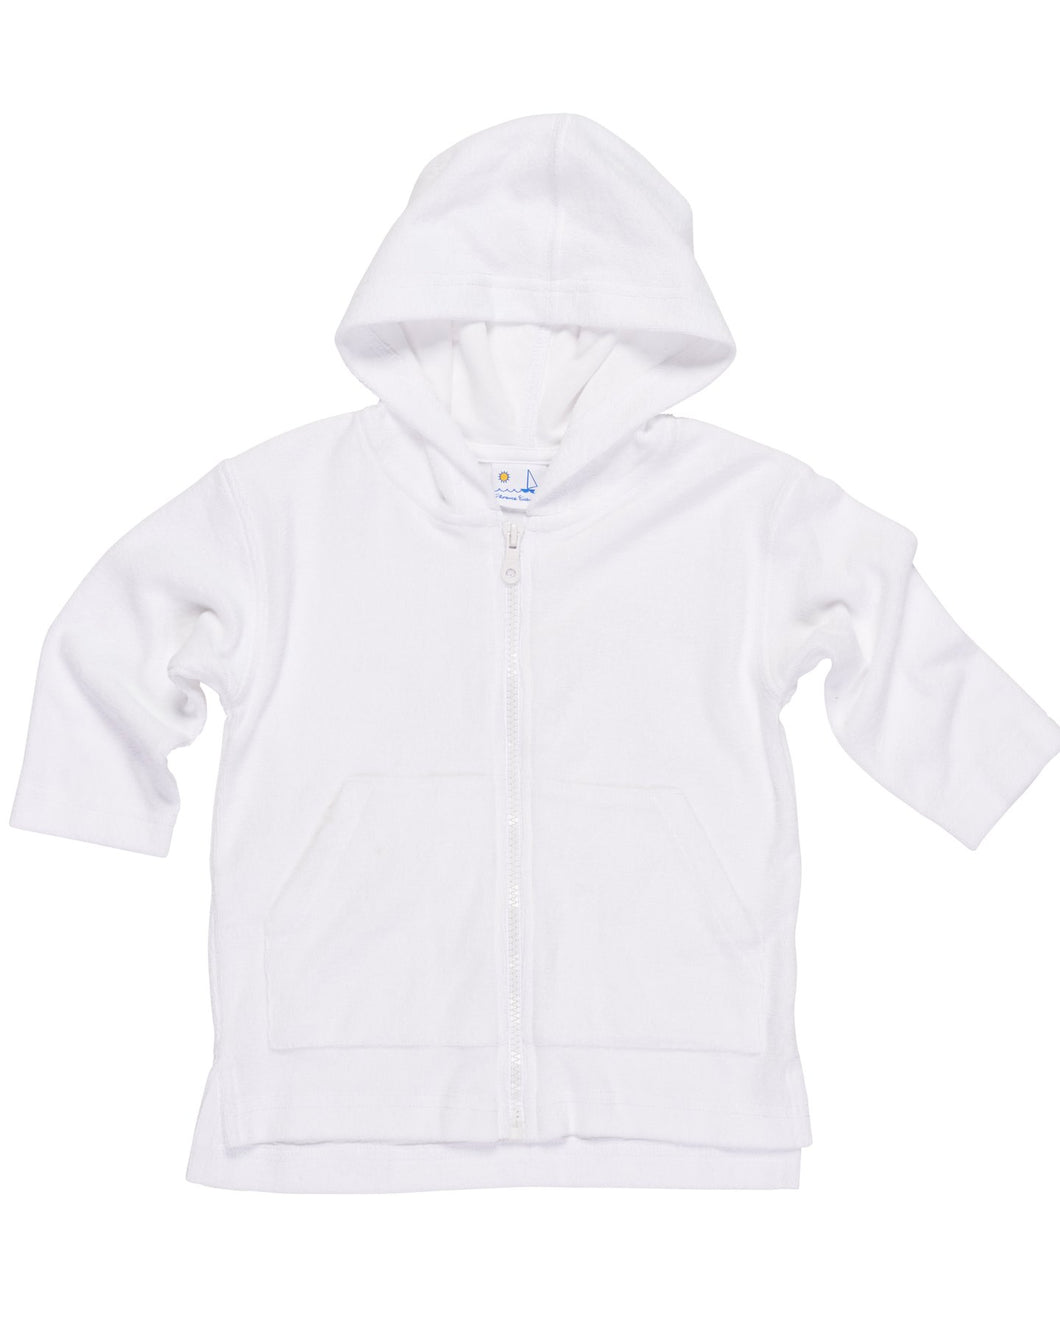 Florence Eiseman White Terry Zip Hoodie Coverup